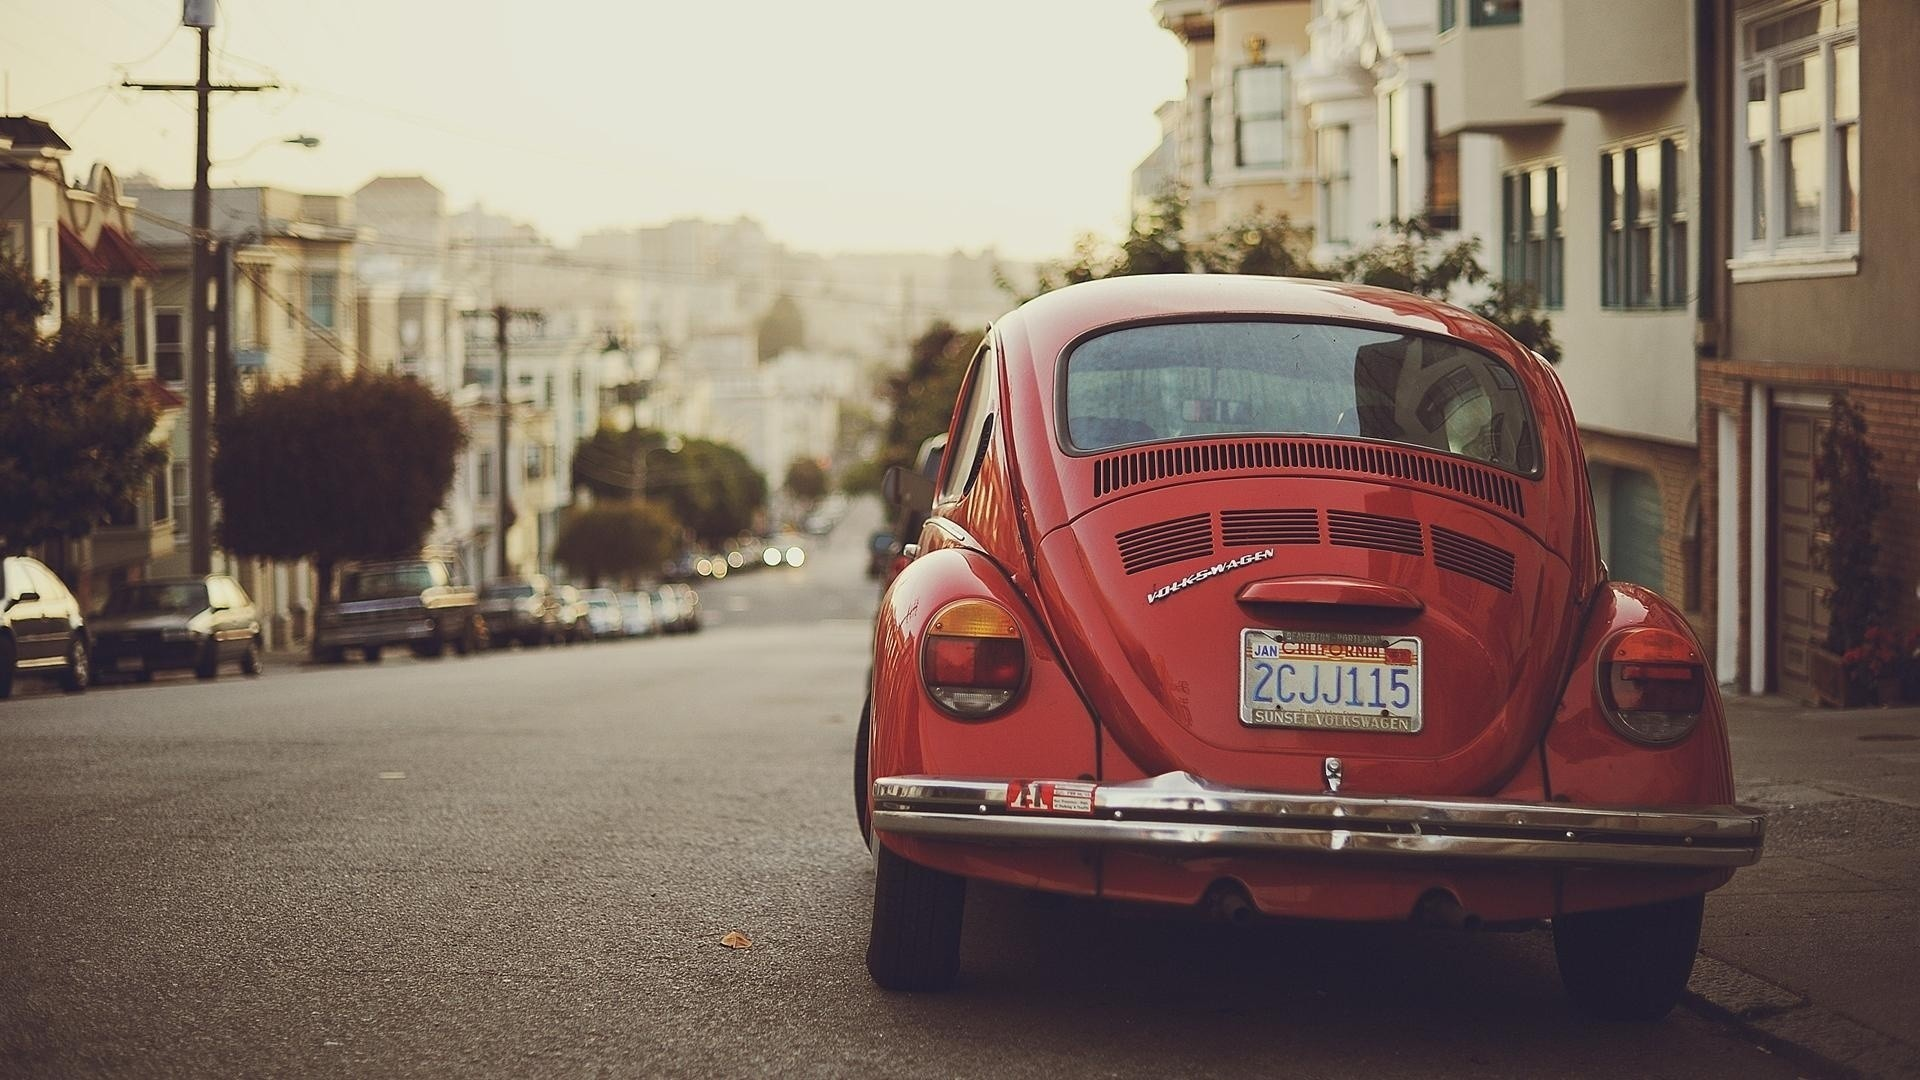 Res: 1920x1080, Vintage Car Wallpapers 15 - 1920 X 1080